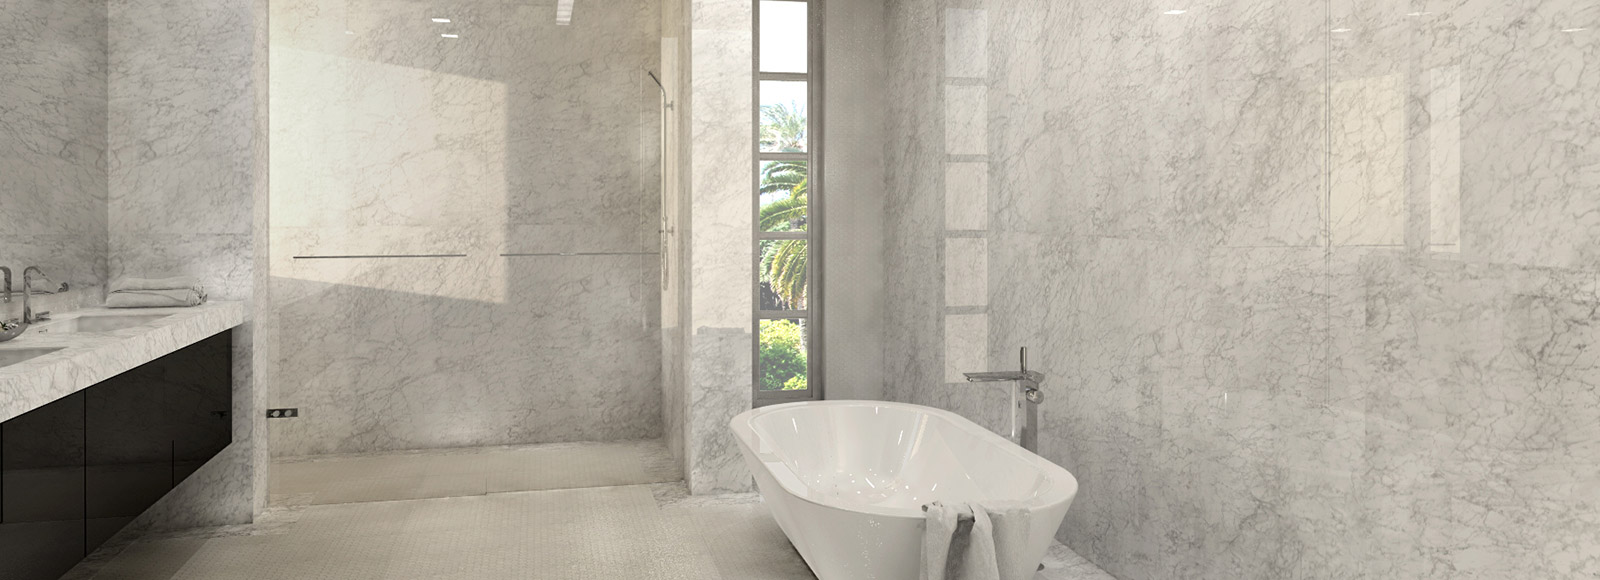 A wide image of a bathroom with marbled walls, a tall shower and a white, free-standing bathtub with a steel faucet.